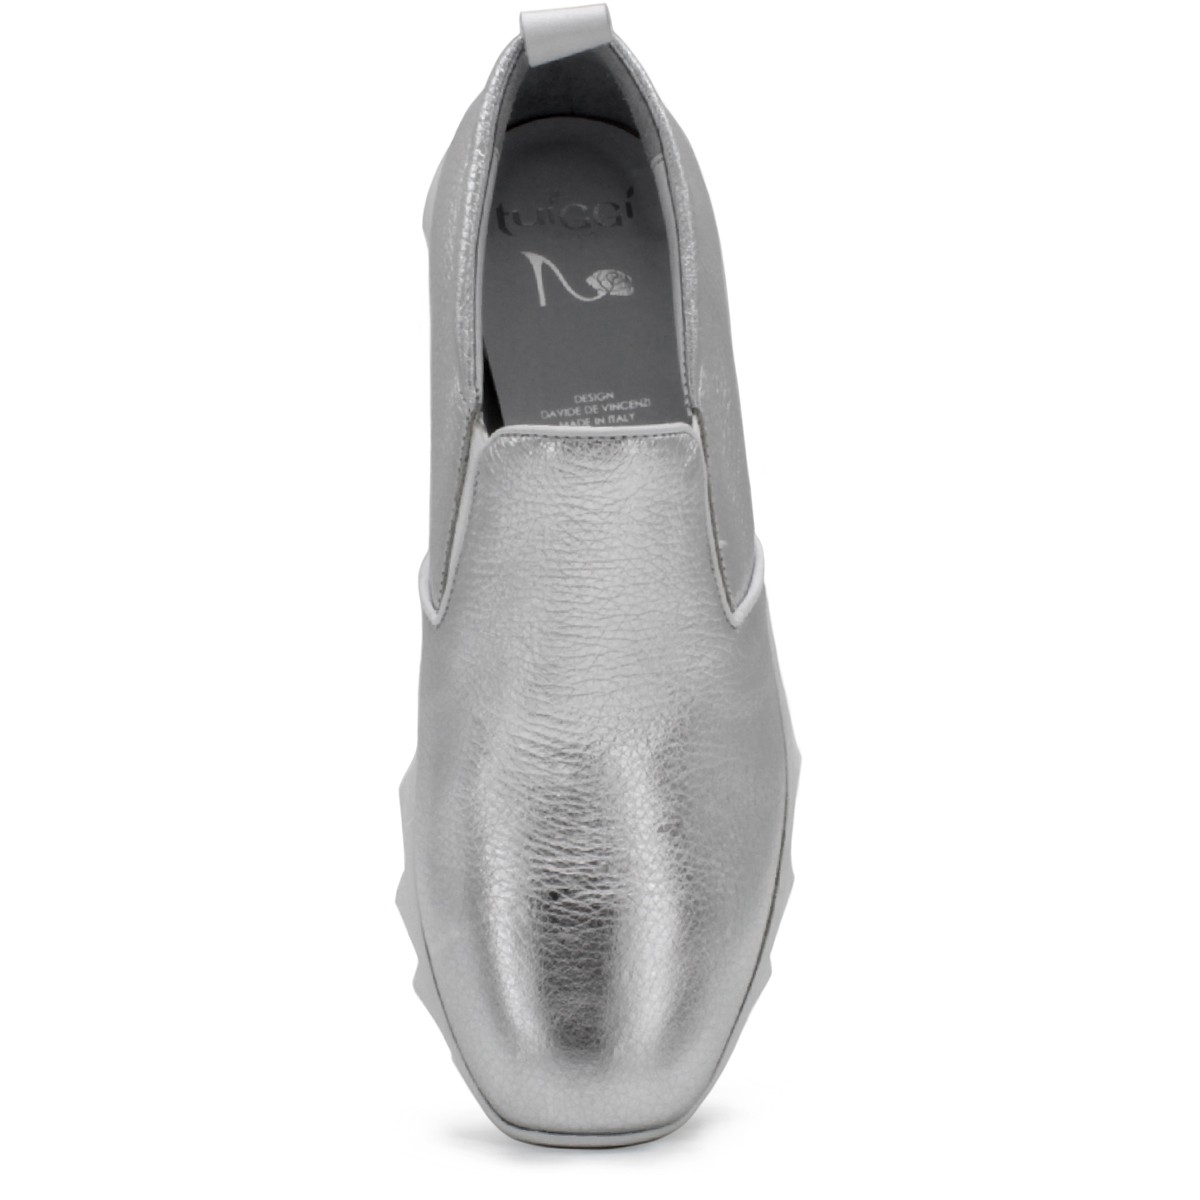 SILVER SLIP-ON SNEAKERS